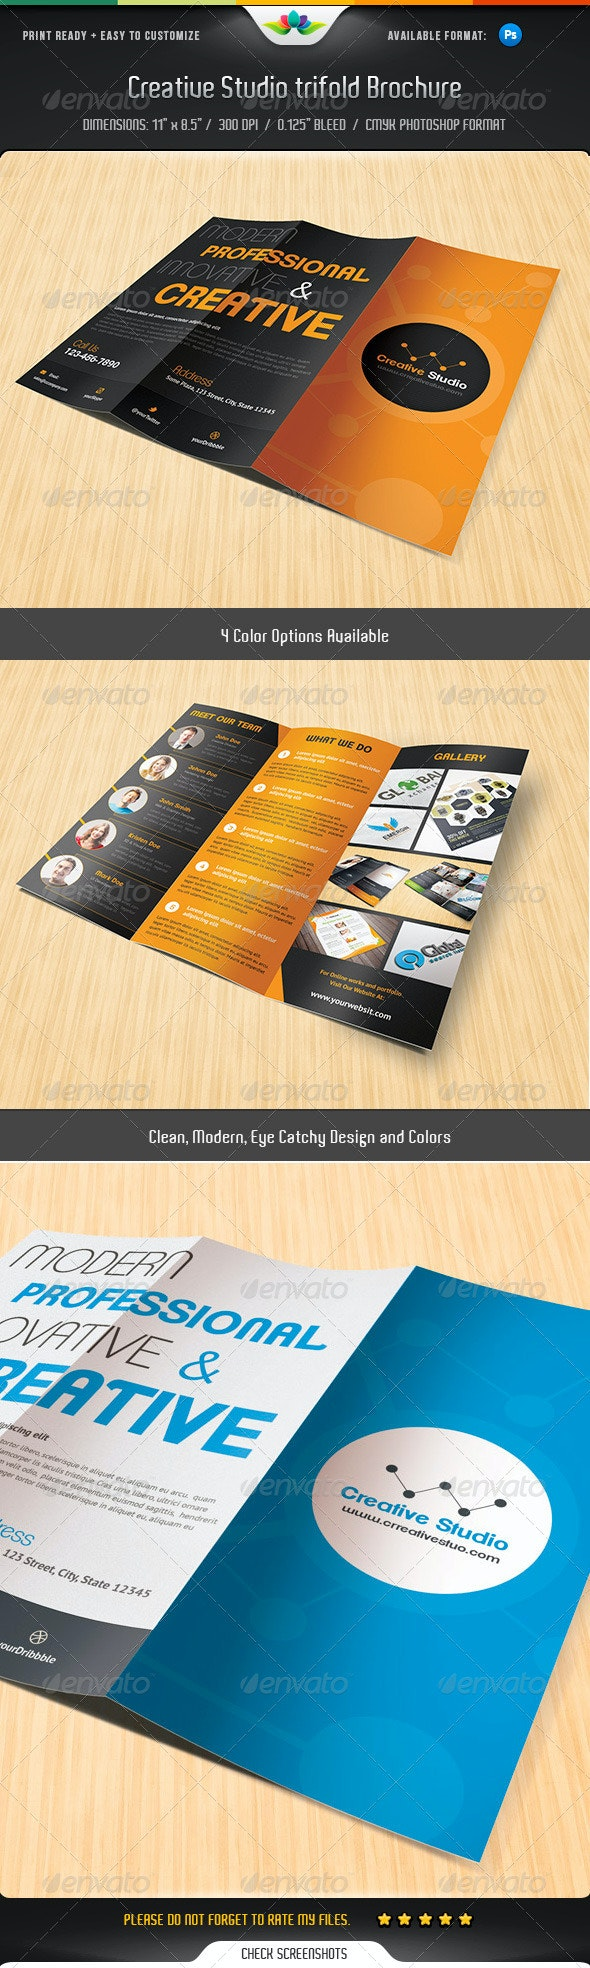 Creative Studio Trifold brochure - Corporate Brochures